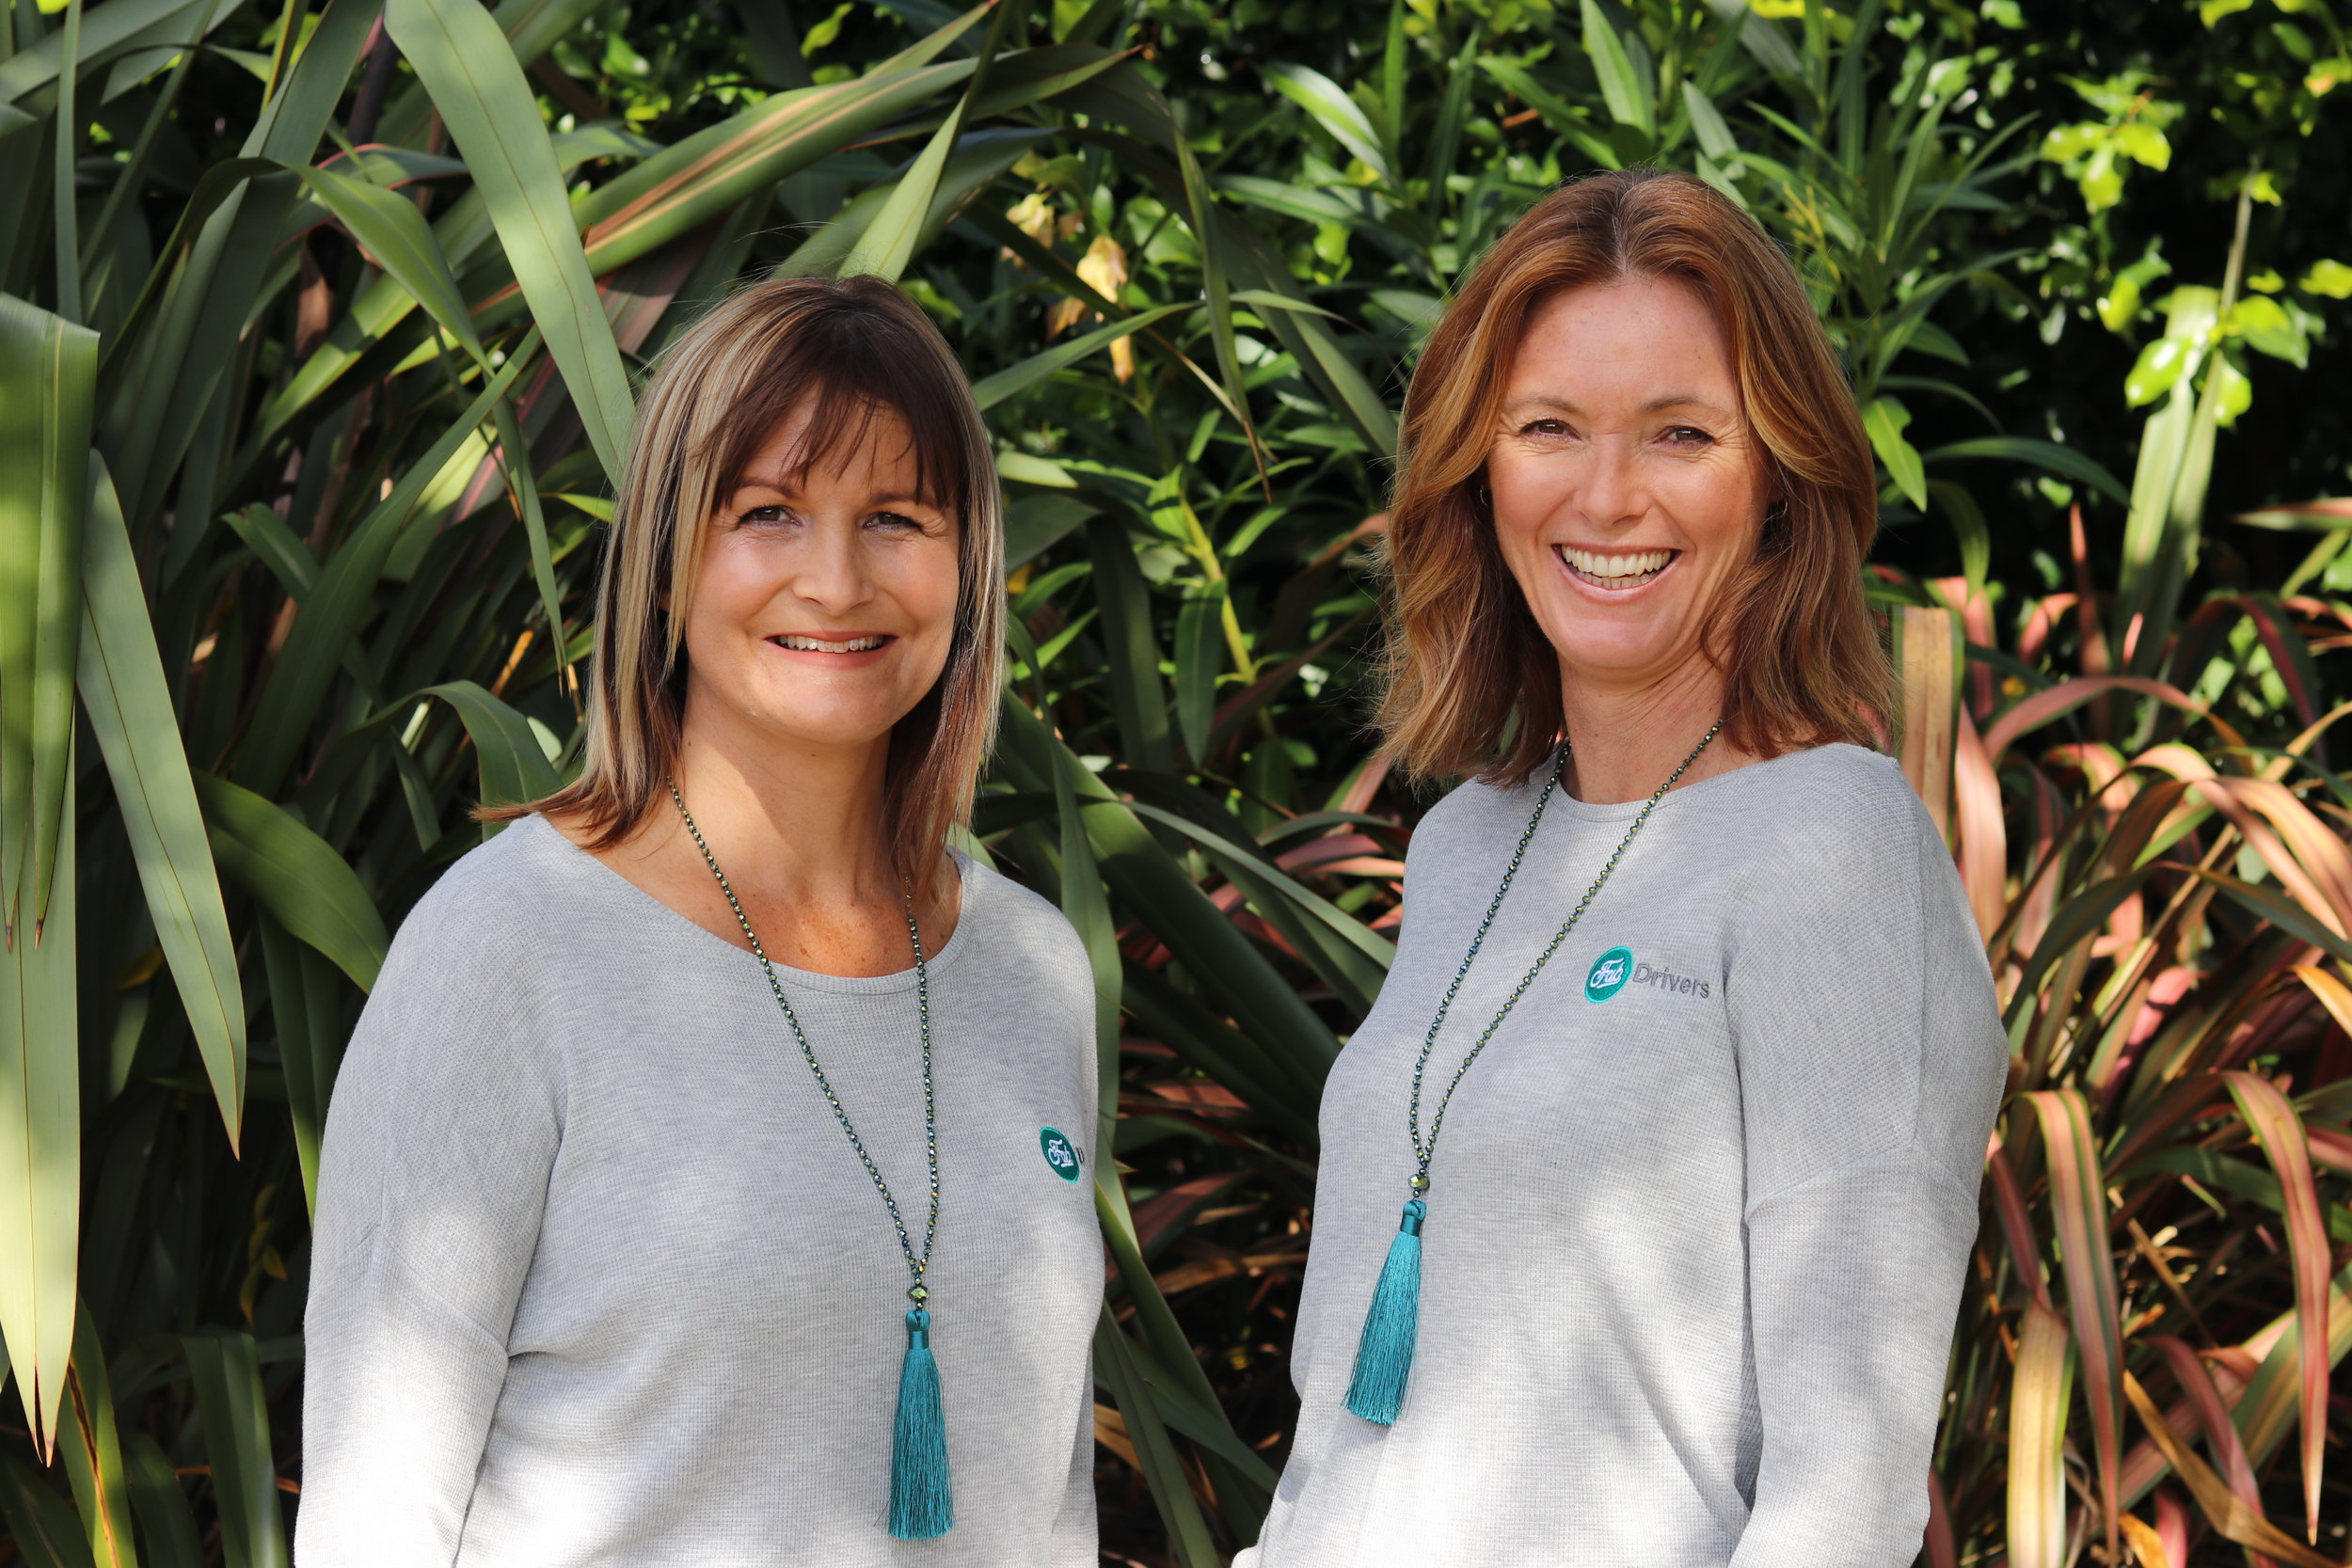 our story - FAB Drivers was created by two Mums from East Auckland, Nicola and Rachel on a mission to make sure the ones that they love got to their destination safely.